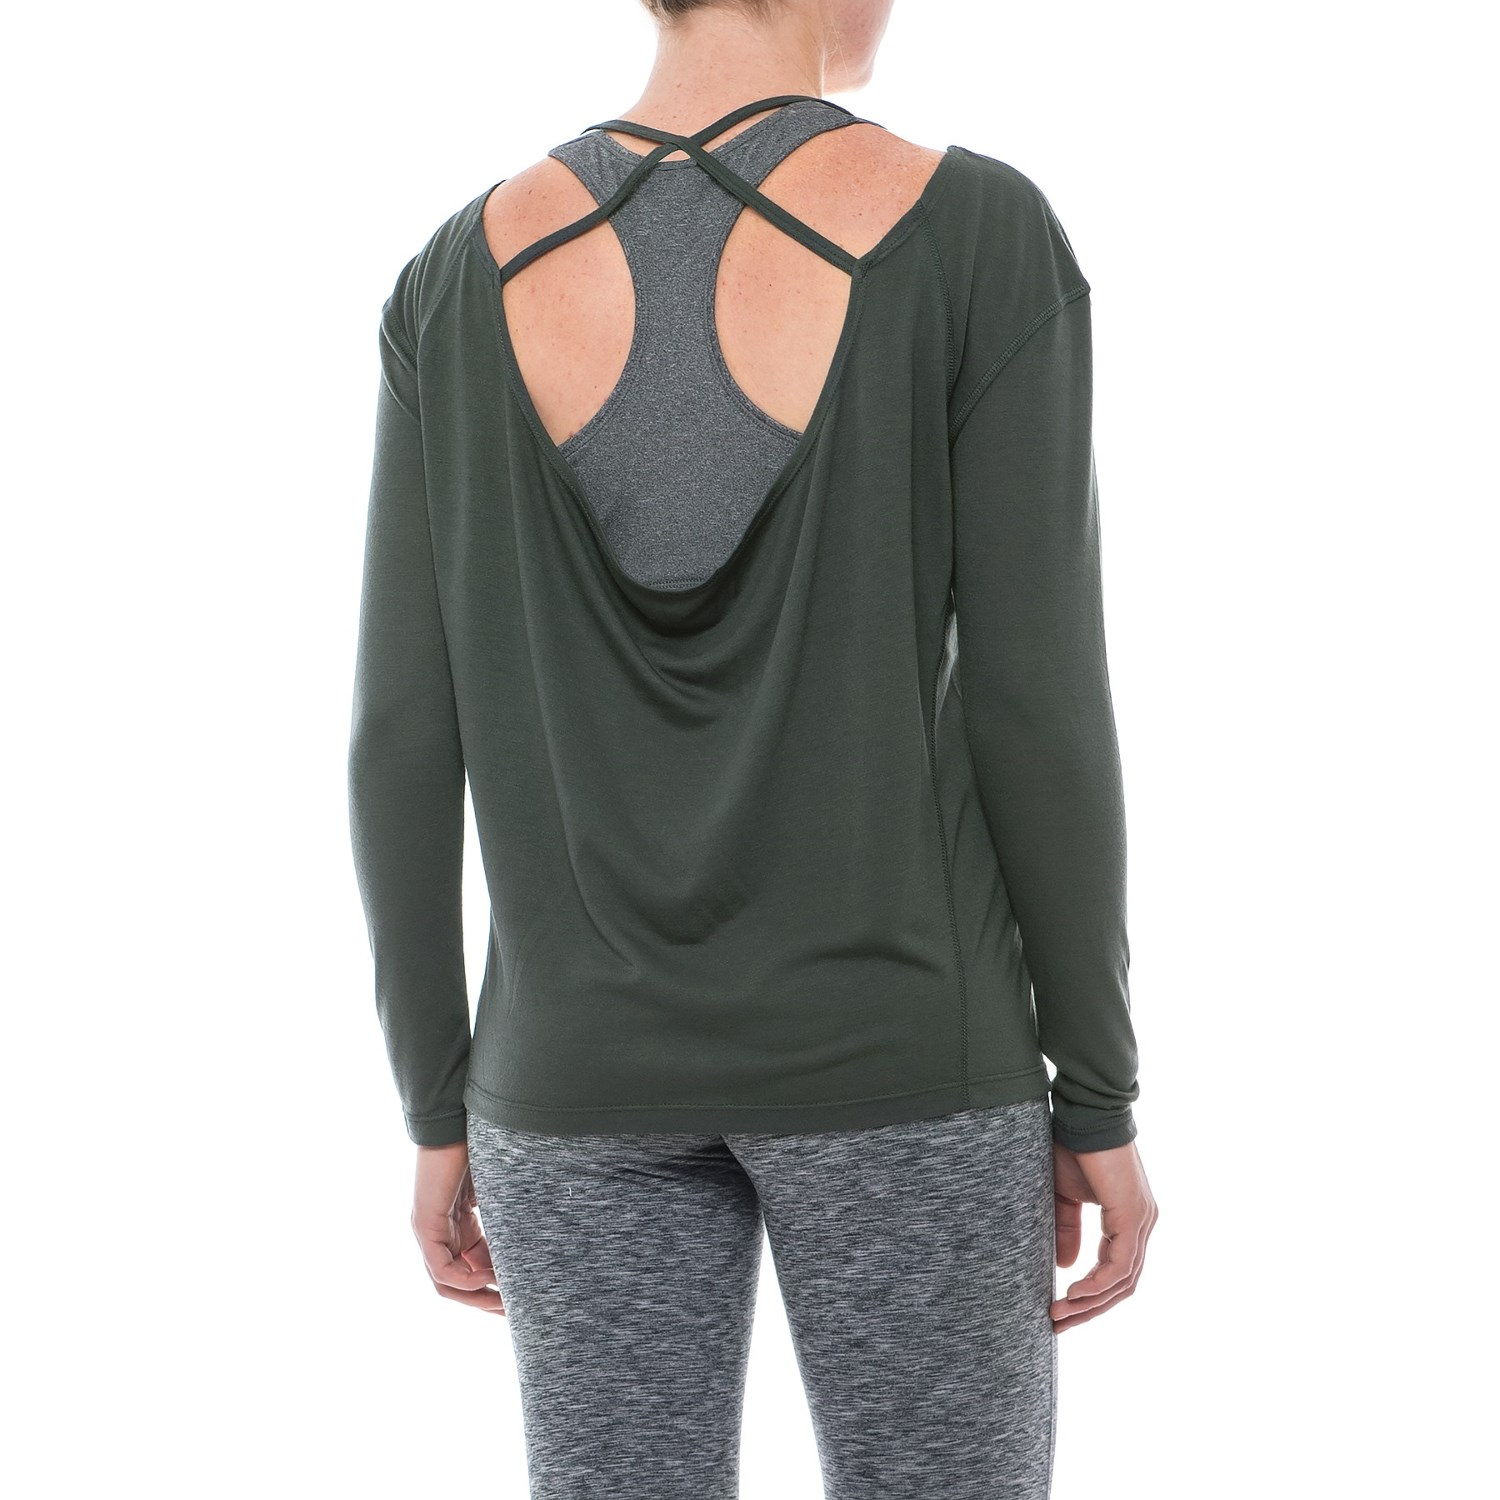 Apana strappy low back shirt for women save 50 for A long sleeve shirt